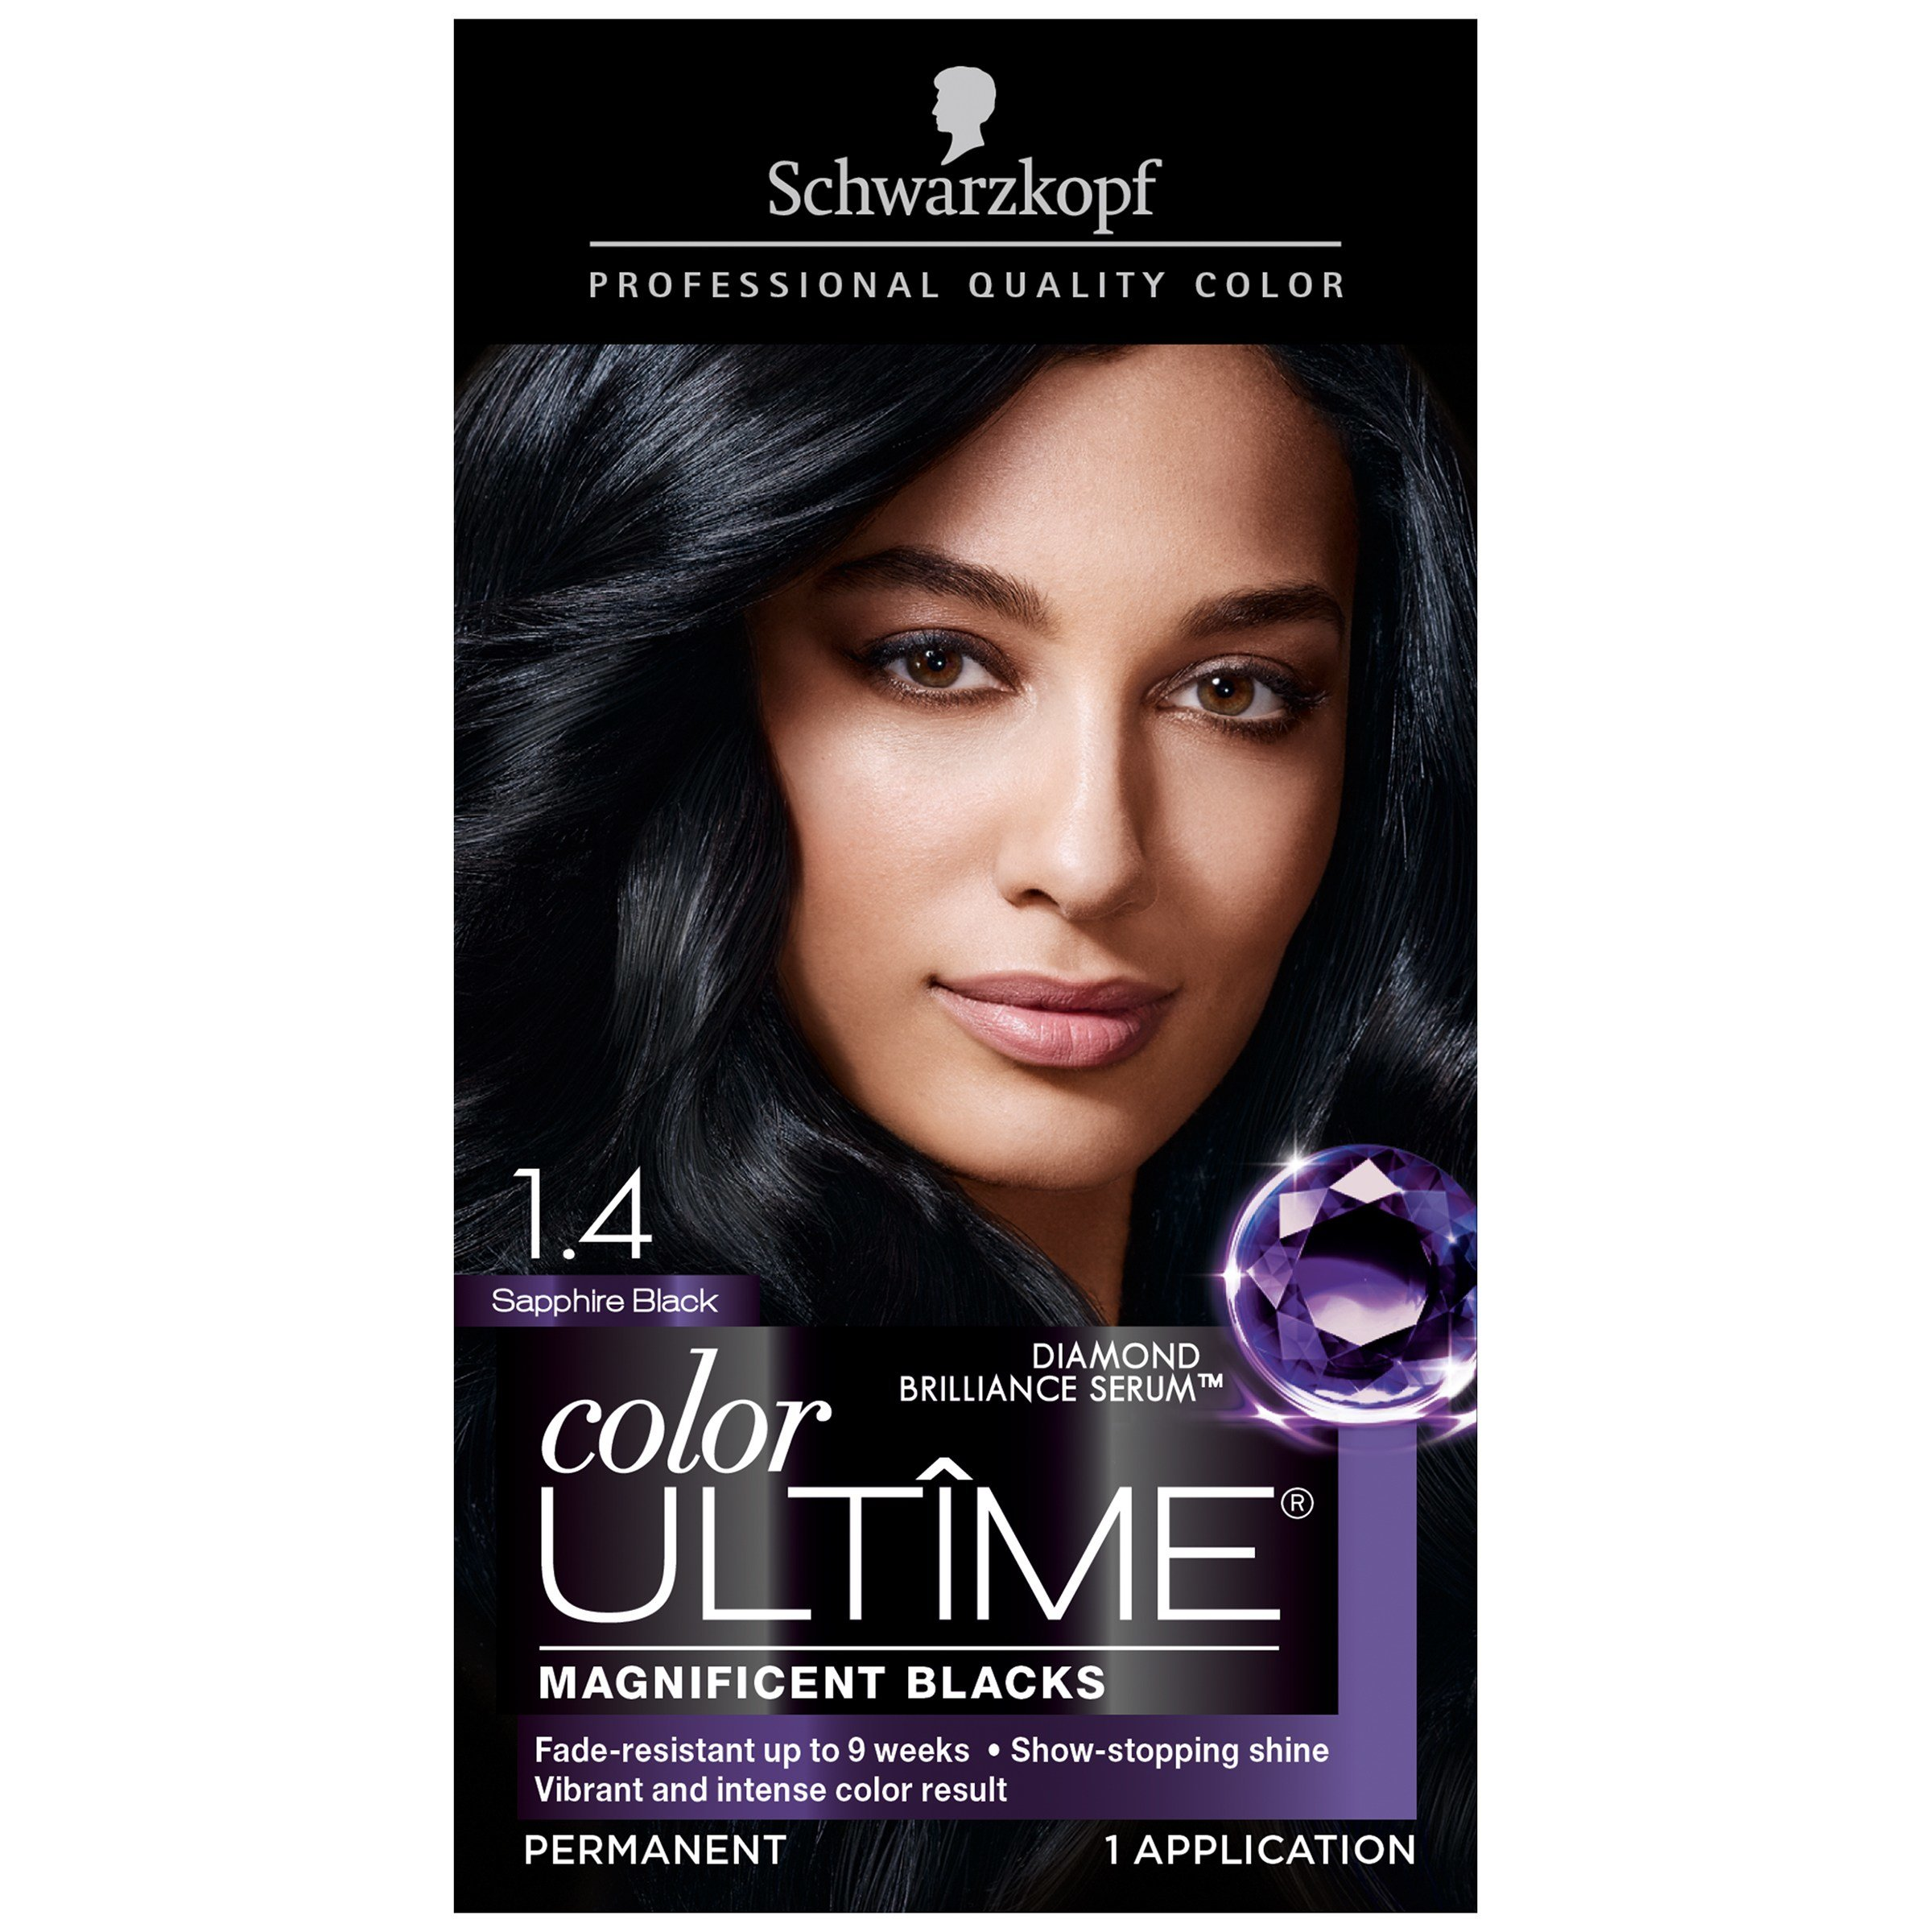 The Best Schwarzkopf Color Ultime Permanent Hair Color Cream 1 4 Pictures